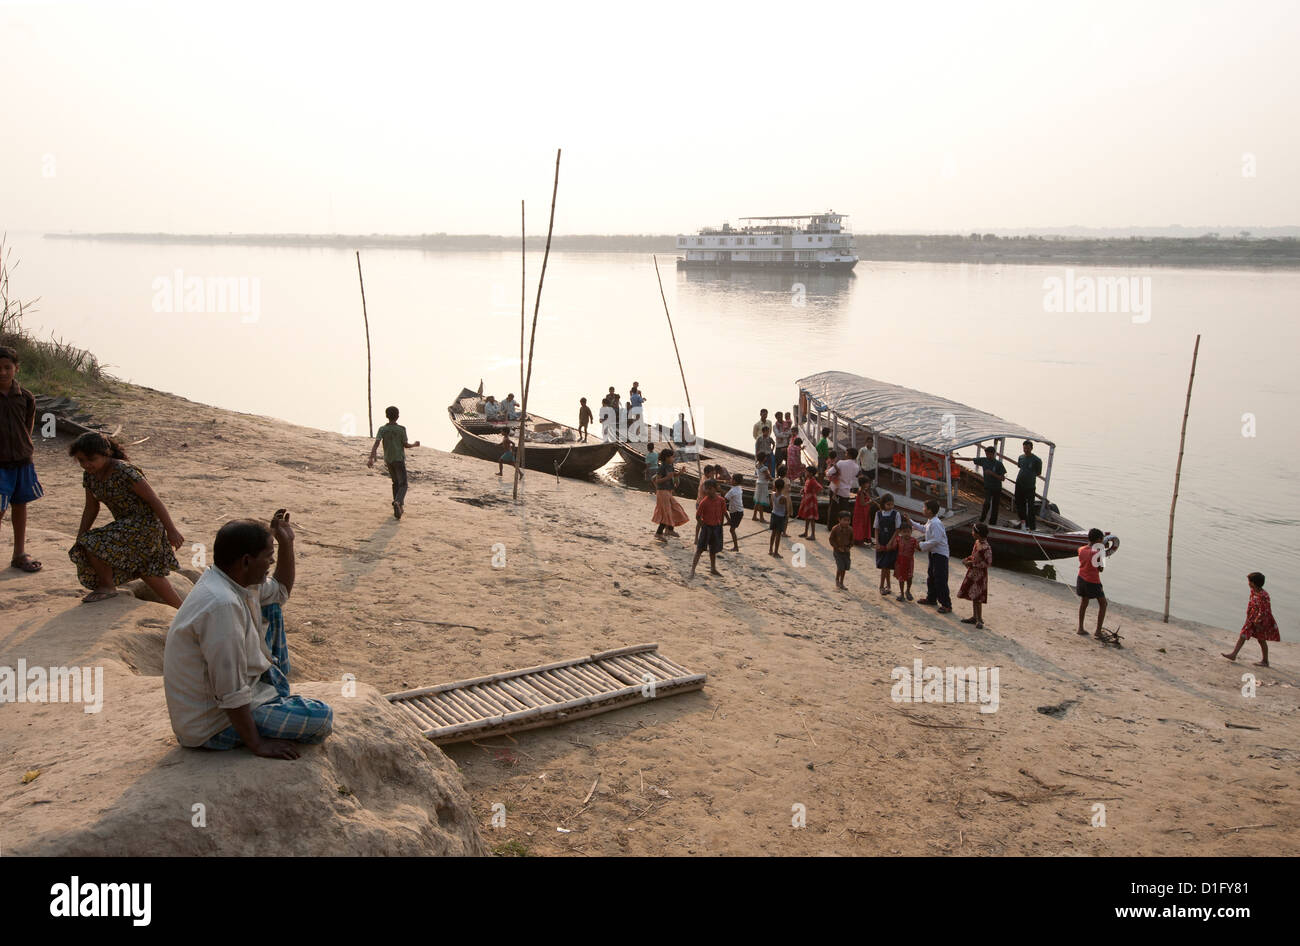 Activity around ferry arrival on the banks of the River Hugli (River Hooghly), rural West Bengal, India, Asia - Stock Image